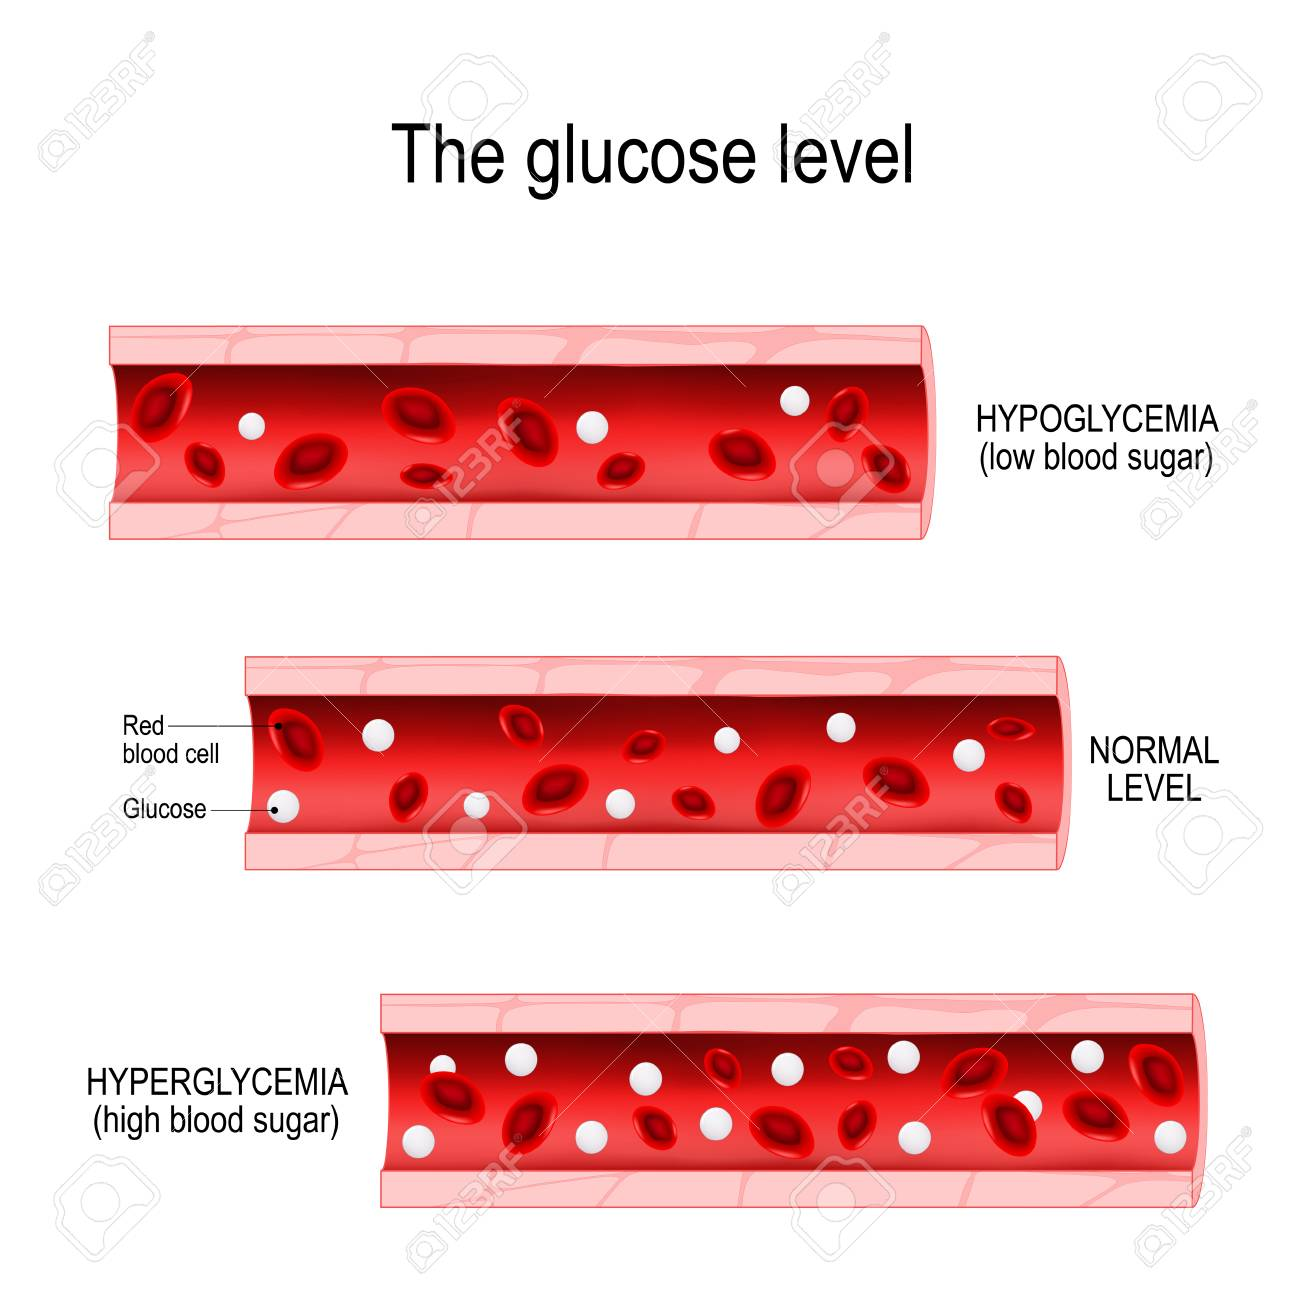 Glucose in the blood vessel  normal level, hyperglycemia (high